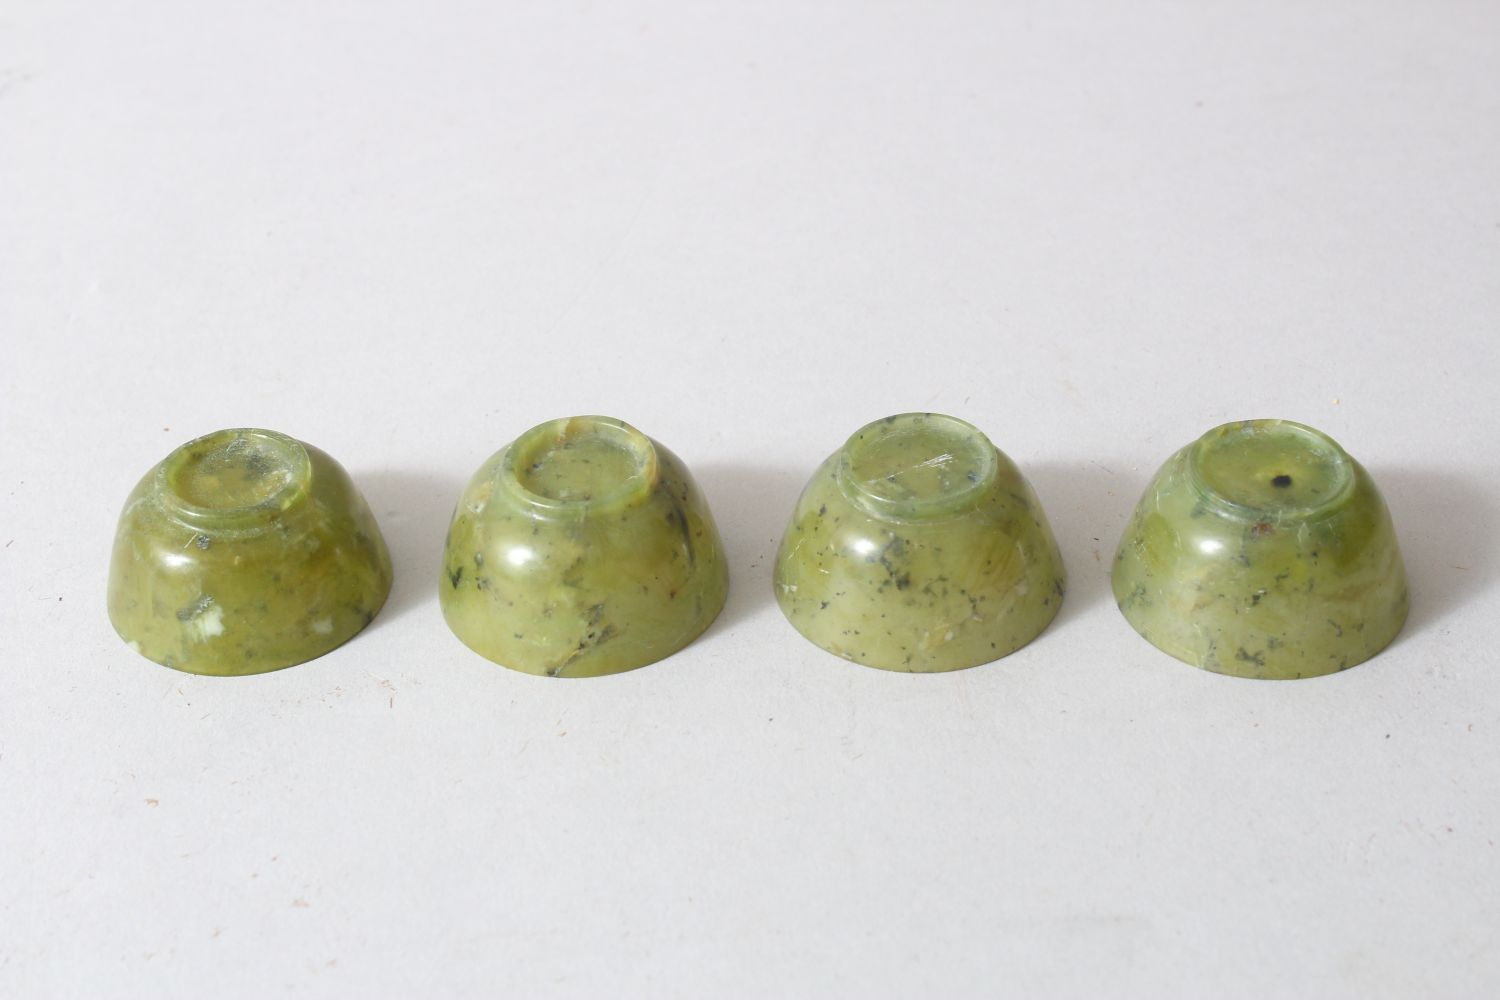 A CHINESE MOTTLED GREEN JADE OVAL TRAY AND FOUR TEA BOWLS, tray 16cm wide. - Image 4 of 4